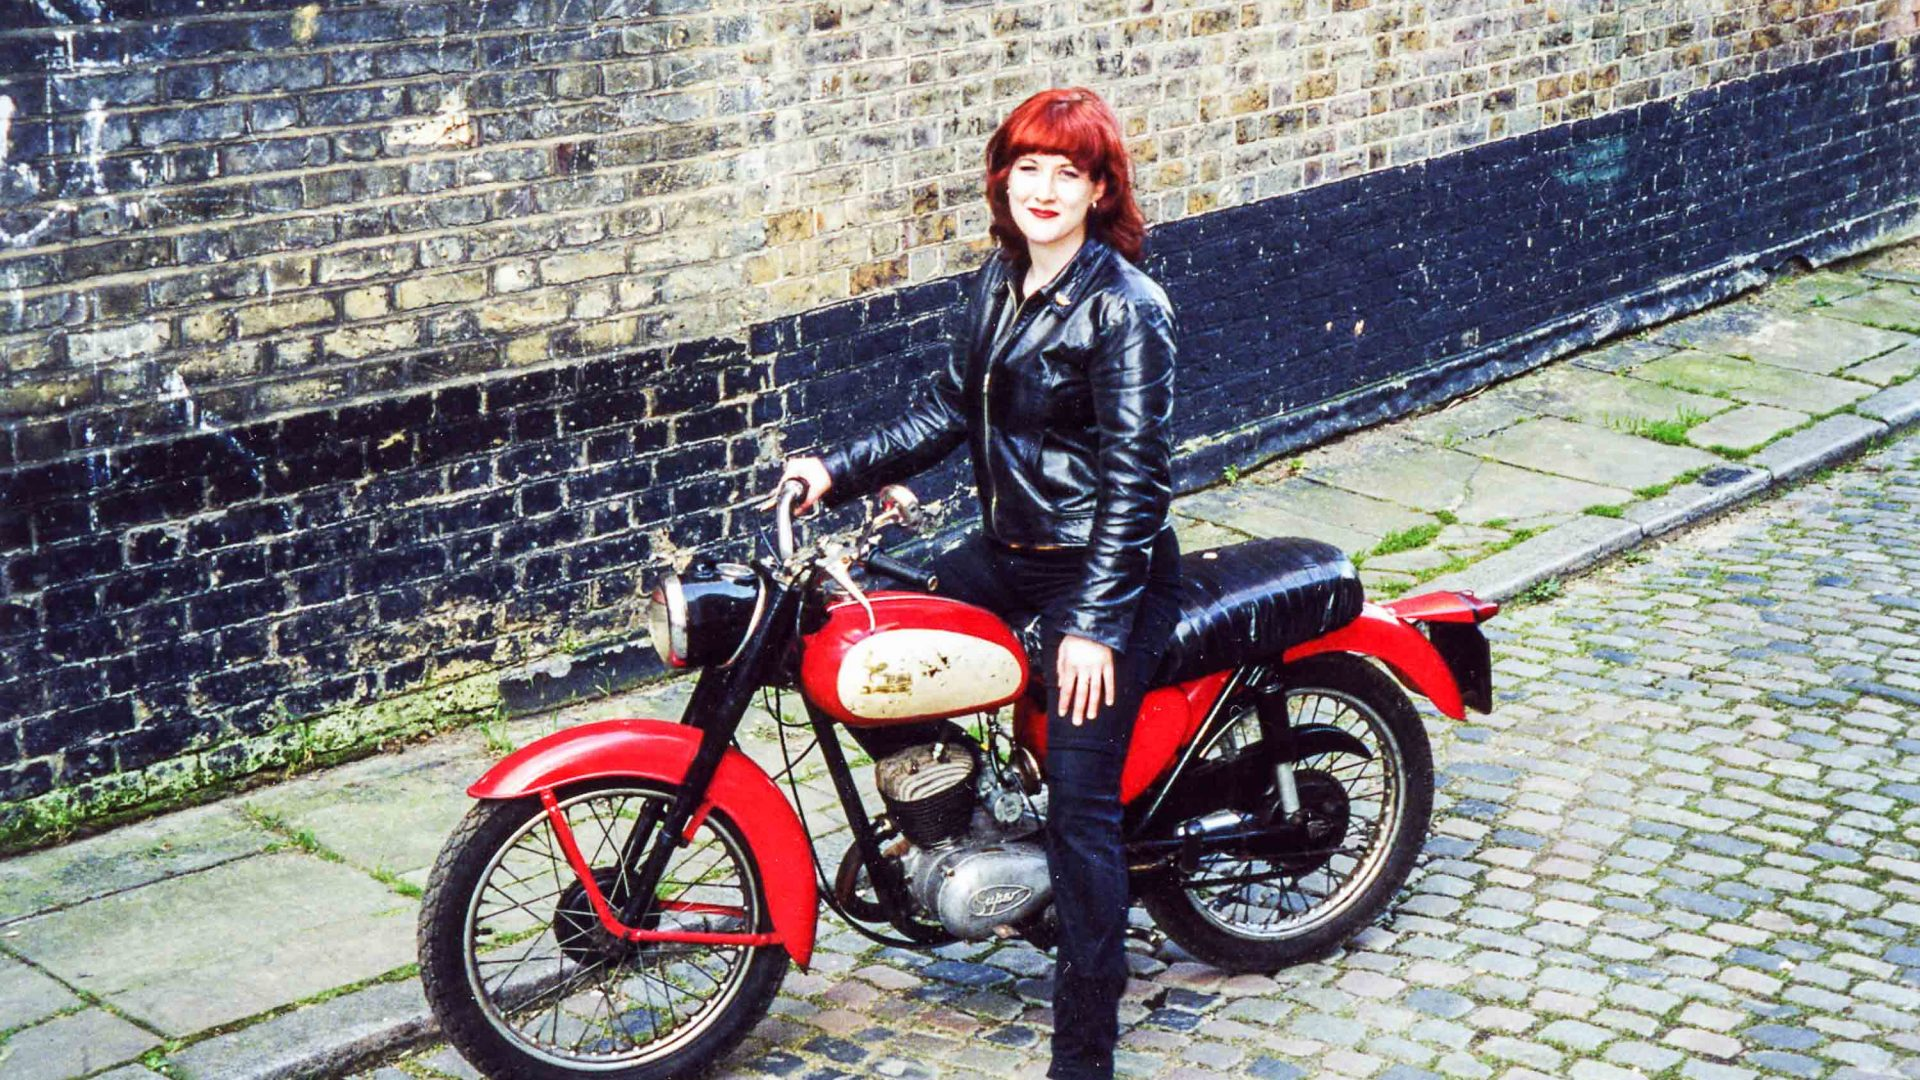 Lois poses with her first ever motorcycle.